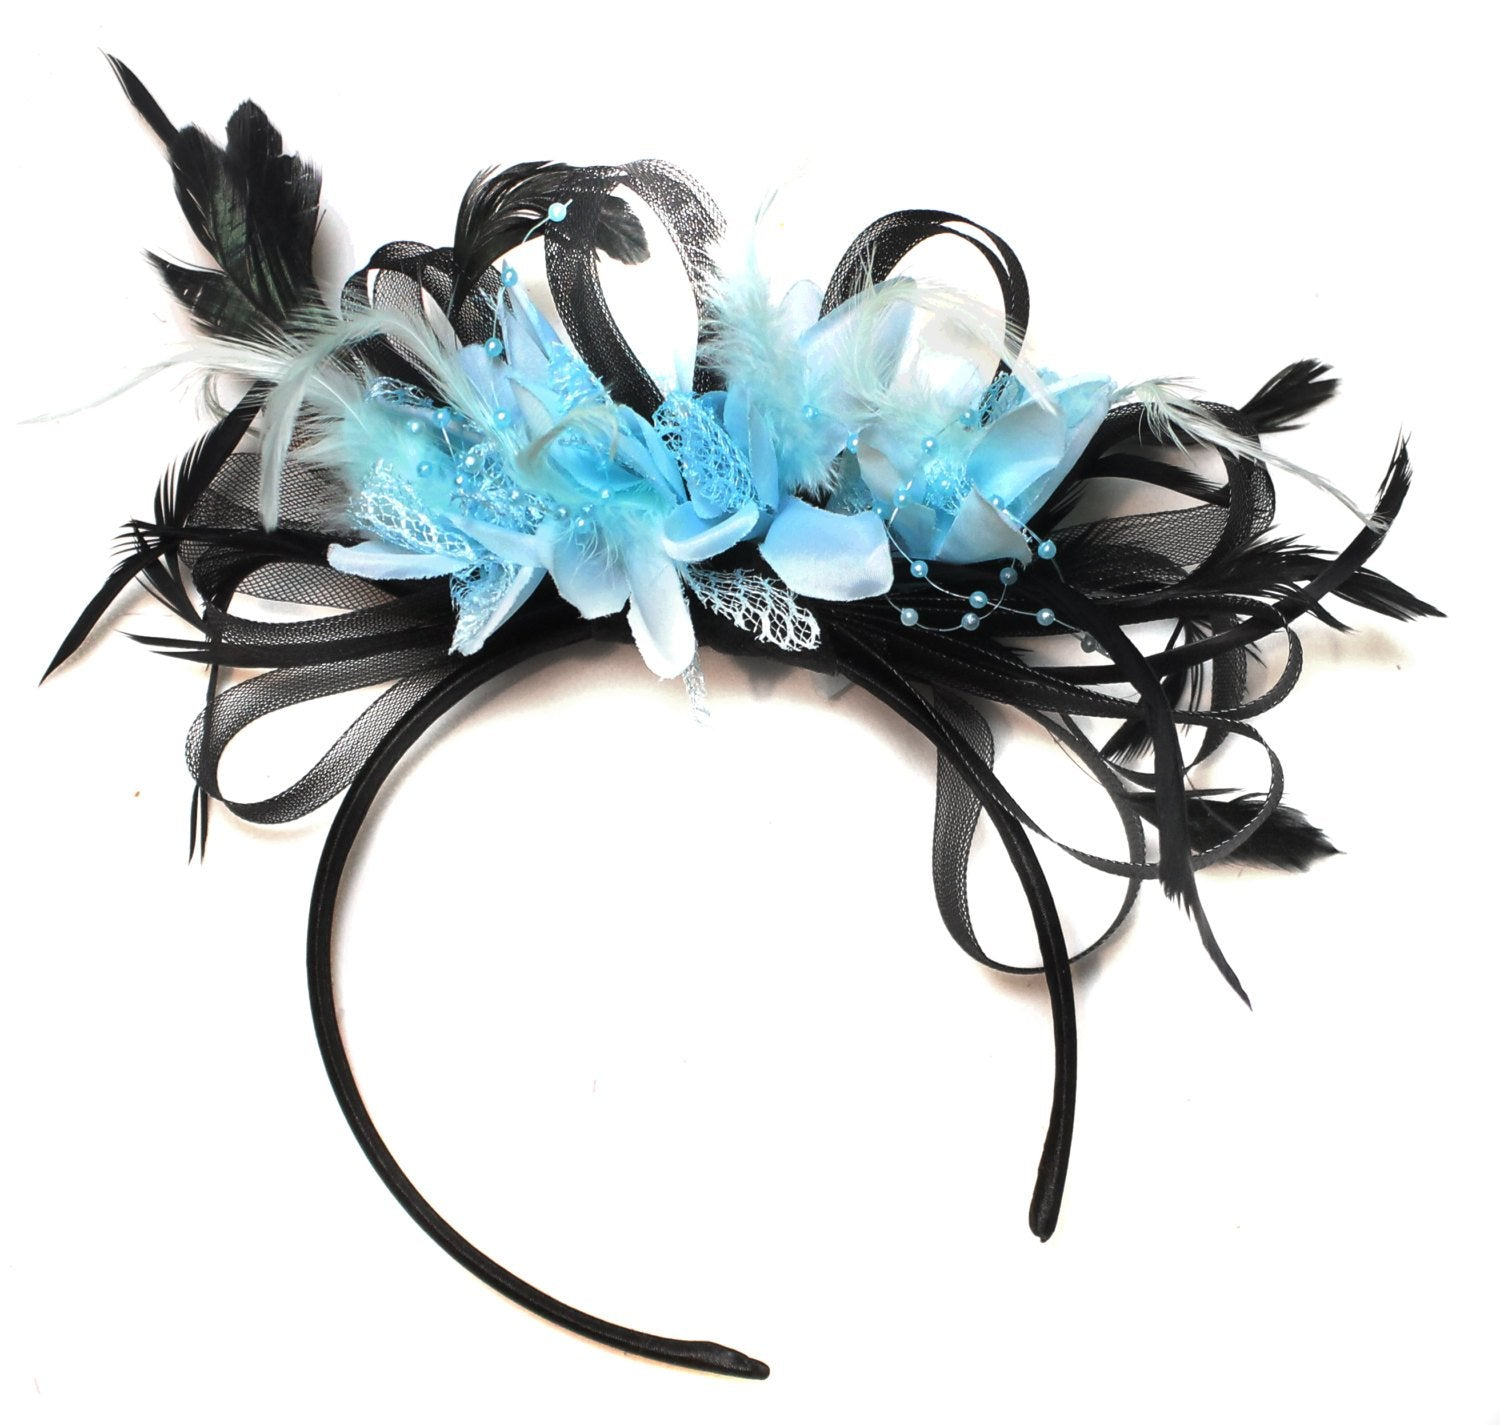 Caprilite Black Hoop & Baby Sky Blue Feathers Fascinator Headband Ascot Wedding